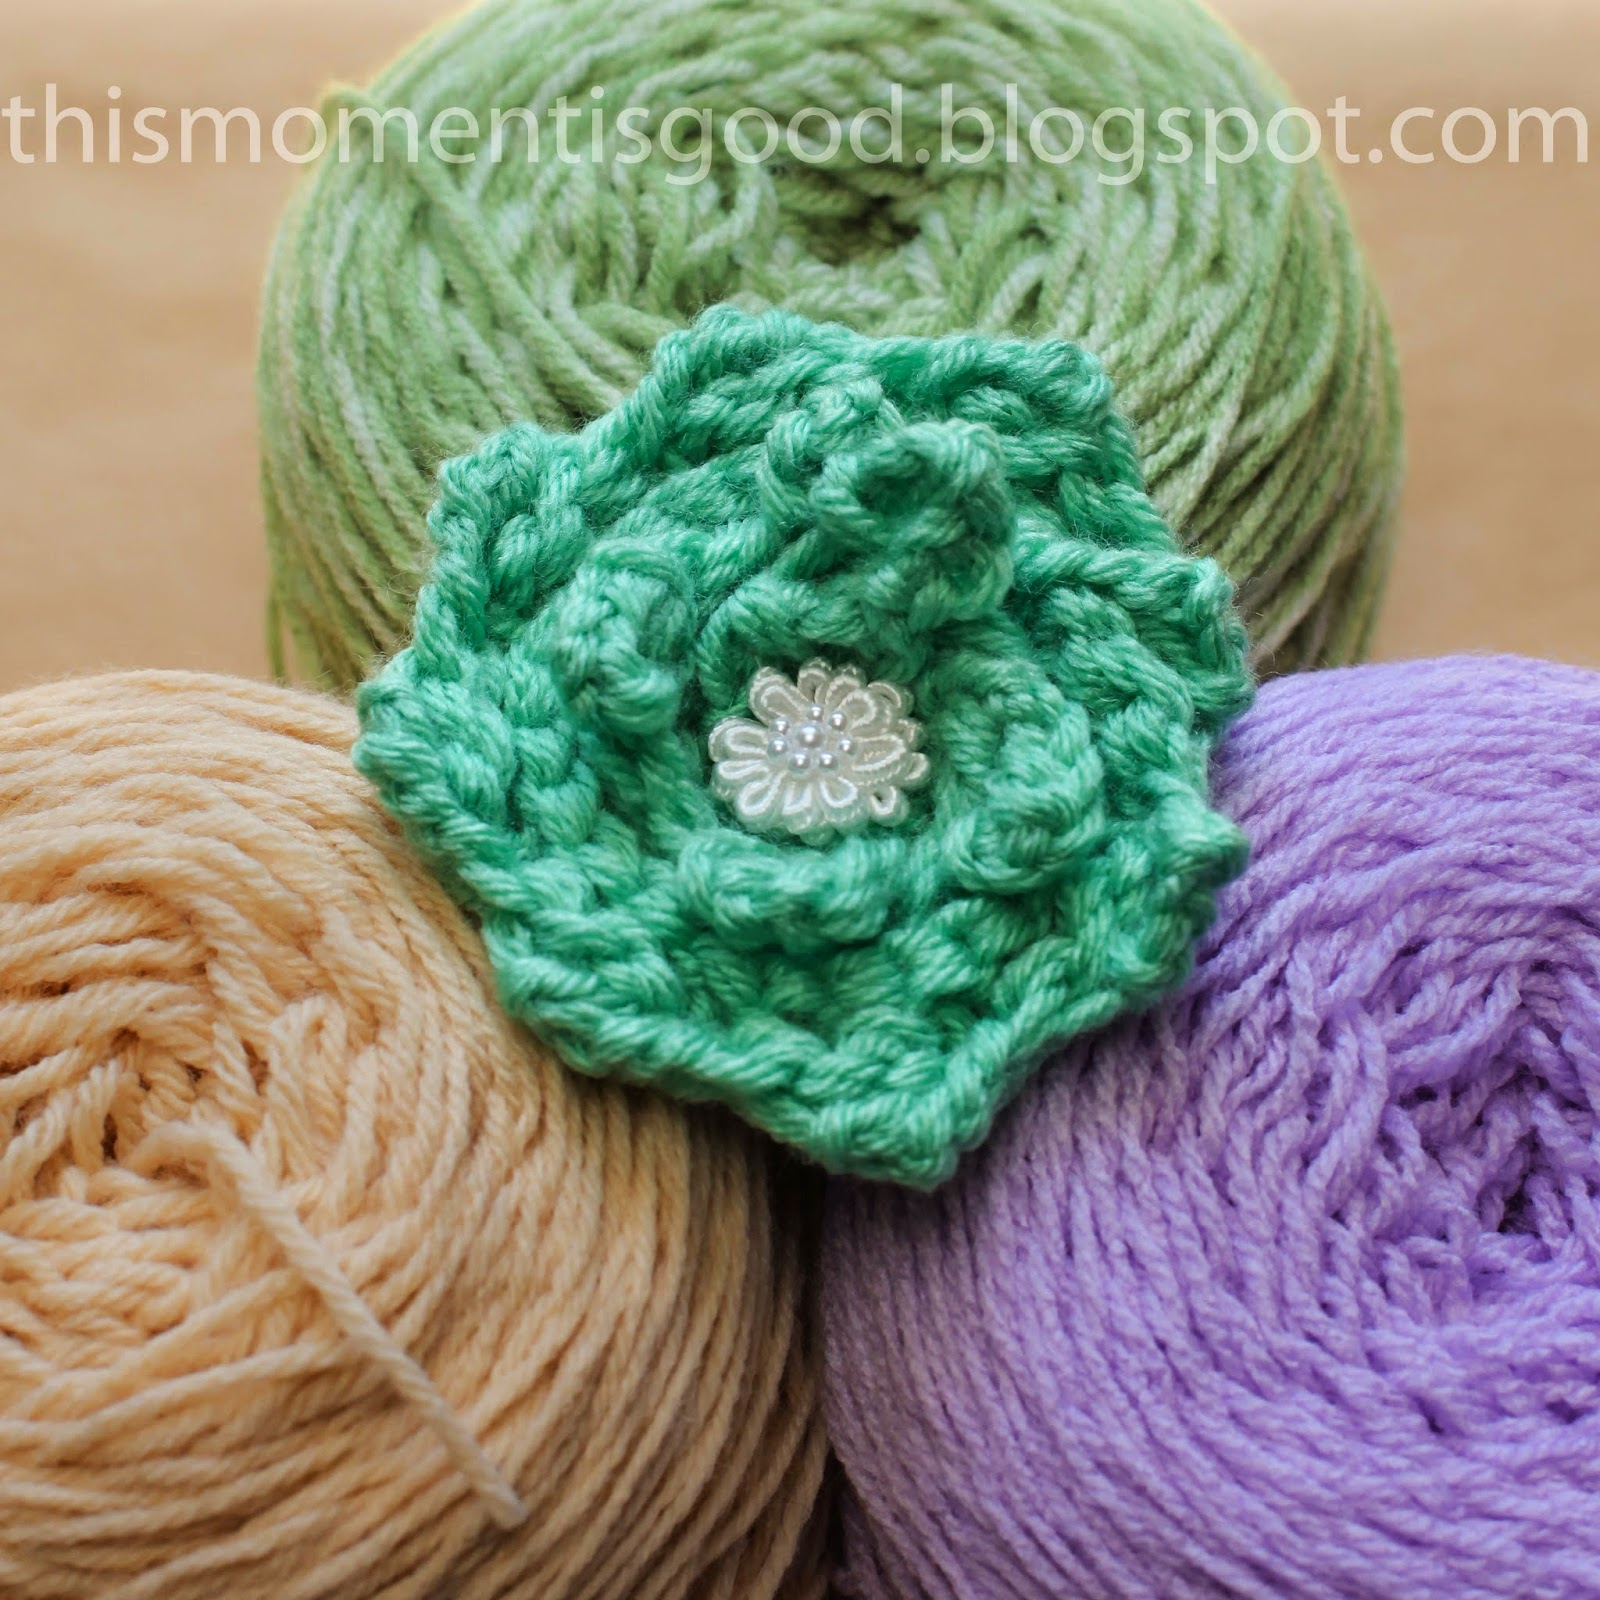 Loom Knitting Stitches Instructions : Loom Knitting by This Moment is Good!: LOOM KNIT ROSE PATTERN